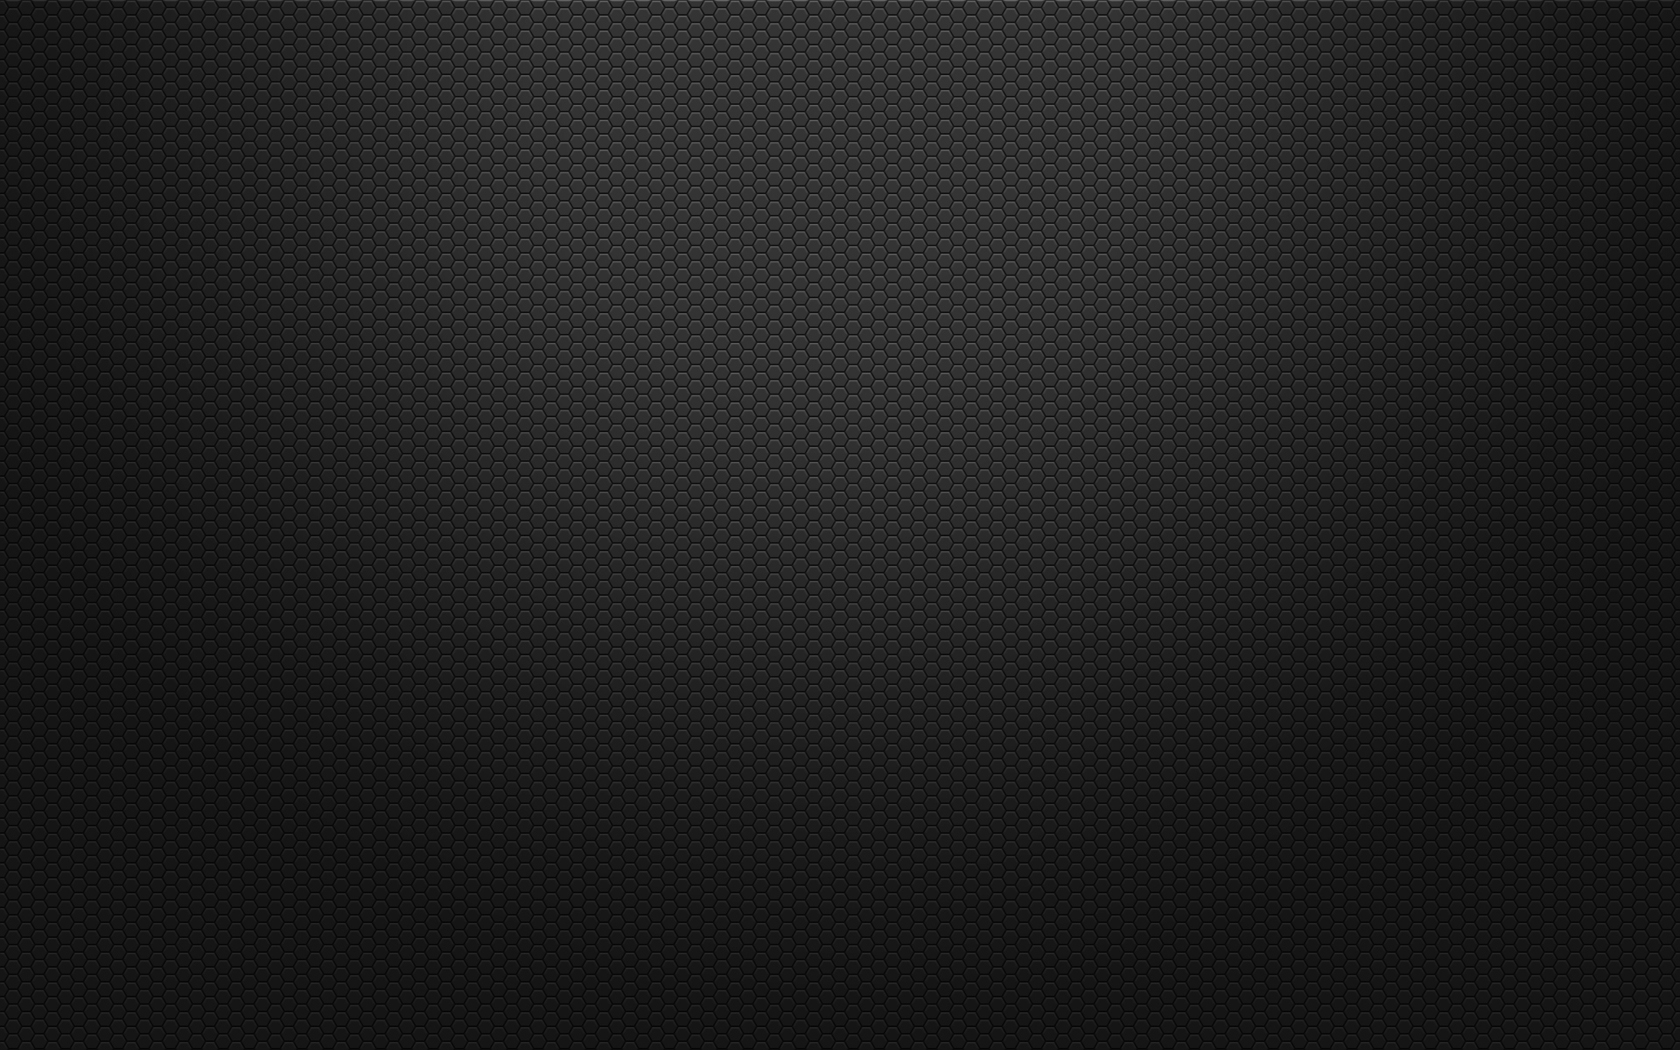 54 Black Background Images Design Wallpapers In Hd: Plain Black Wallpapers HD